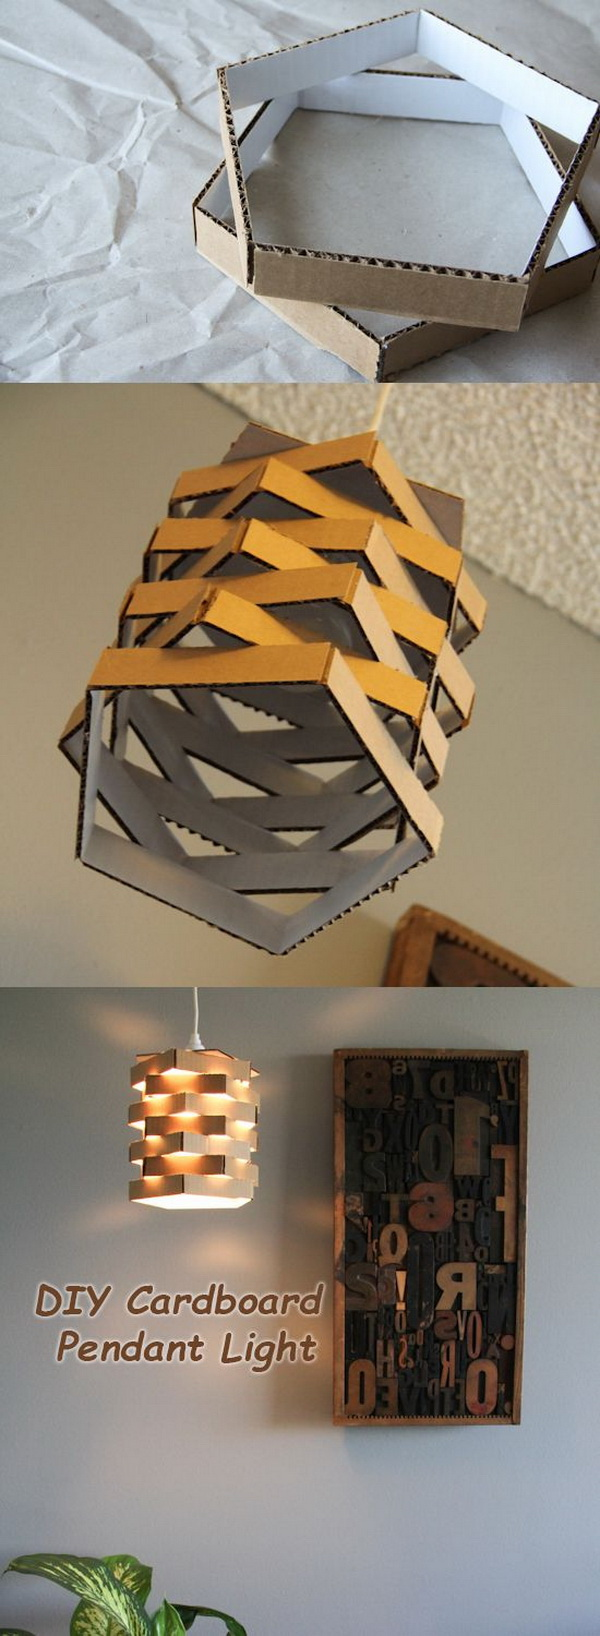 DIY Cardboard Pendant Light.